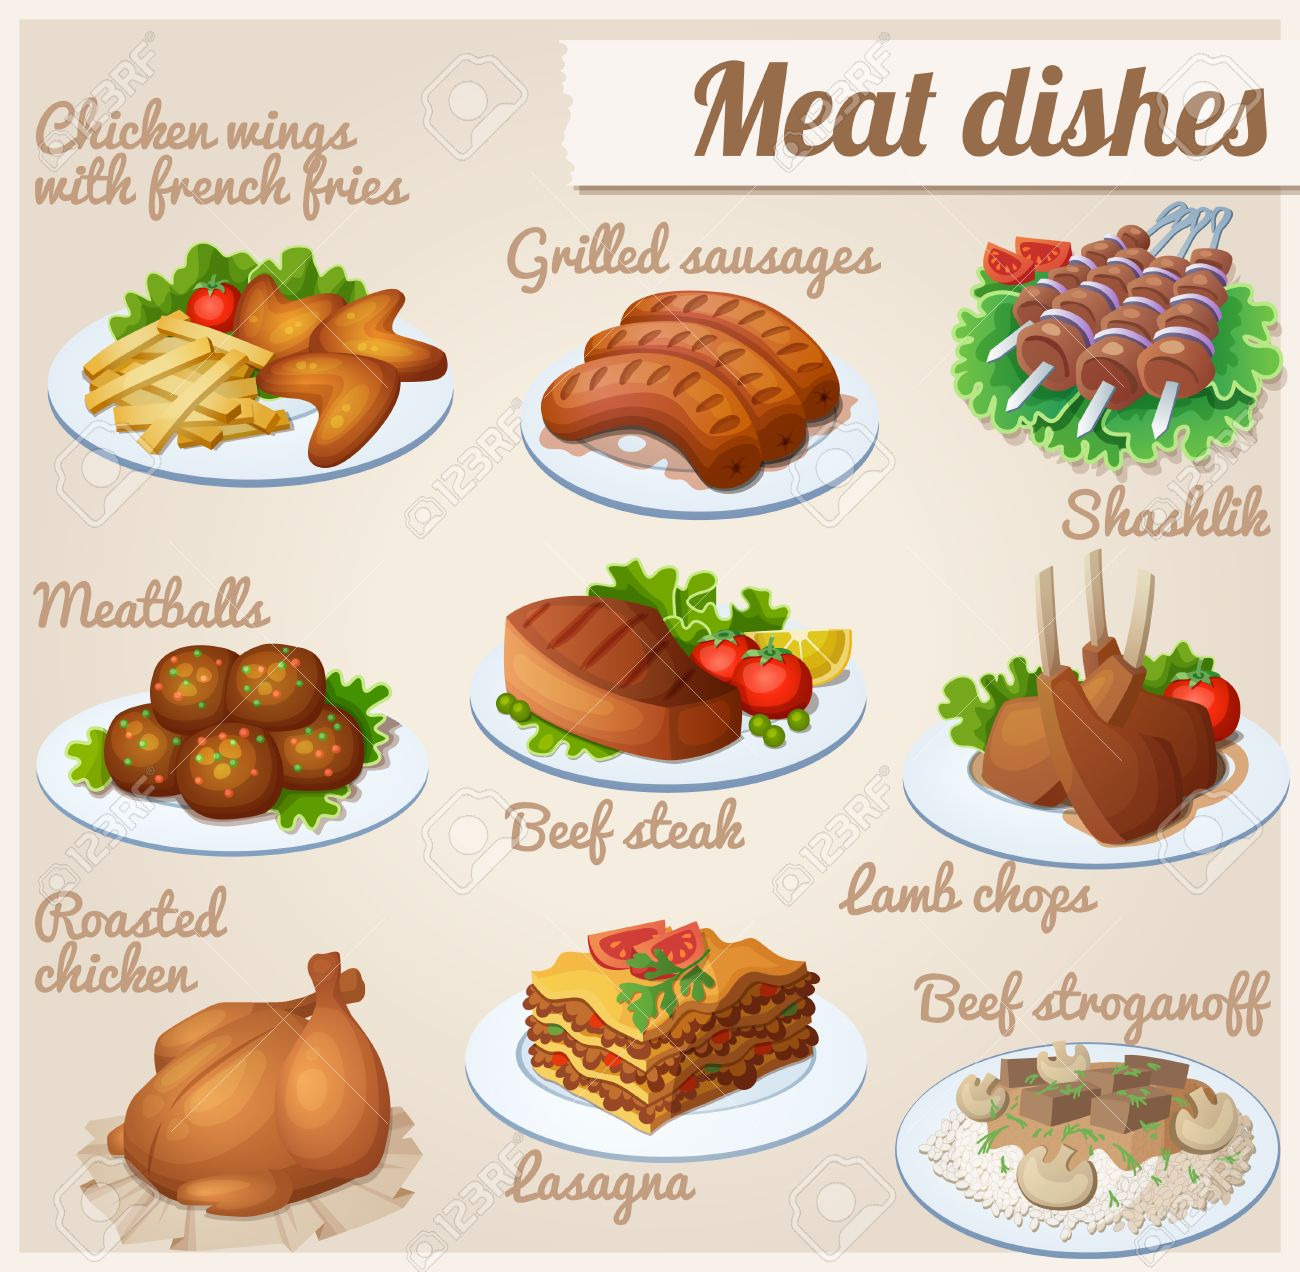 Chicken wings with french fries, grilled sausages, shashlik, meatballs, beef steak, lamb chops roasted chicken lasagna beef stroganoff - 53778453